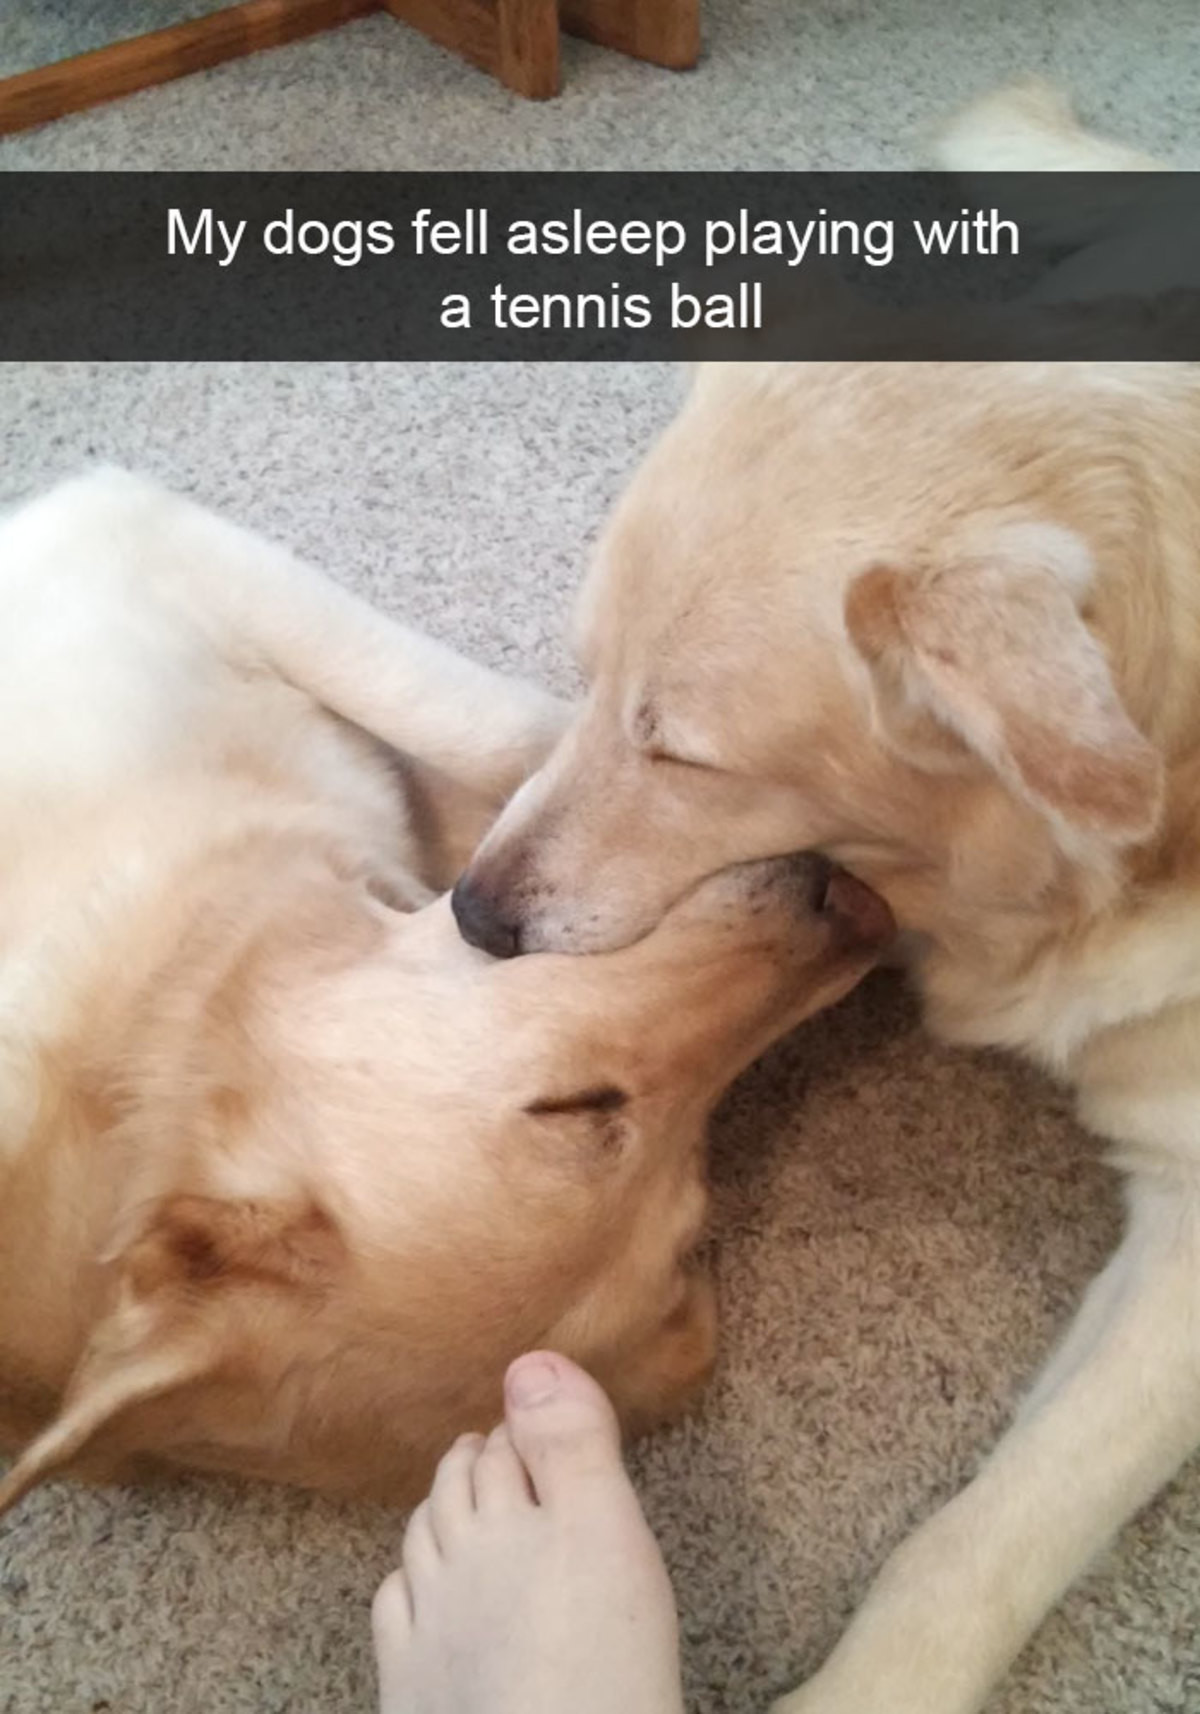 Hilarious Dog Snapchats. join list: CuteDogs (242 subs)Mention Clicks: 4485Msgs Sent: 28713Mention History. My dogs fell asleep playing with a tennis ballEvery